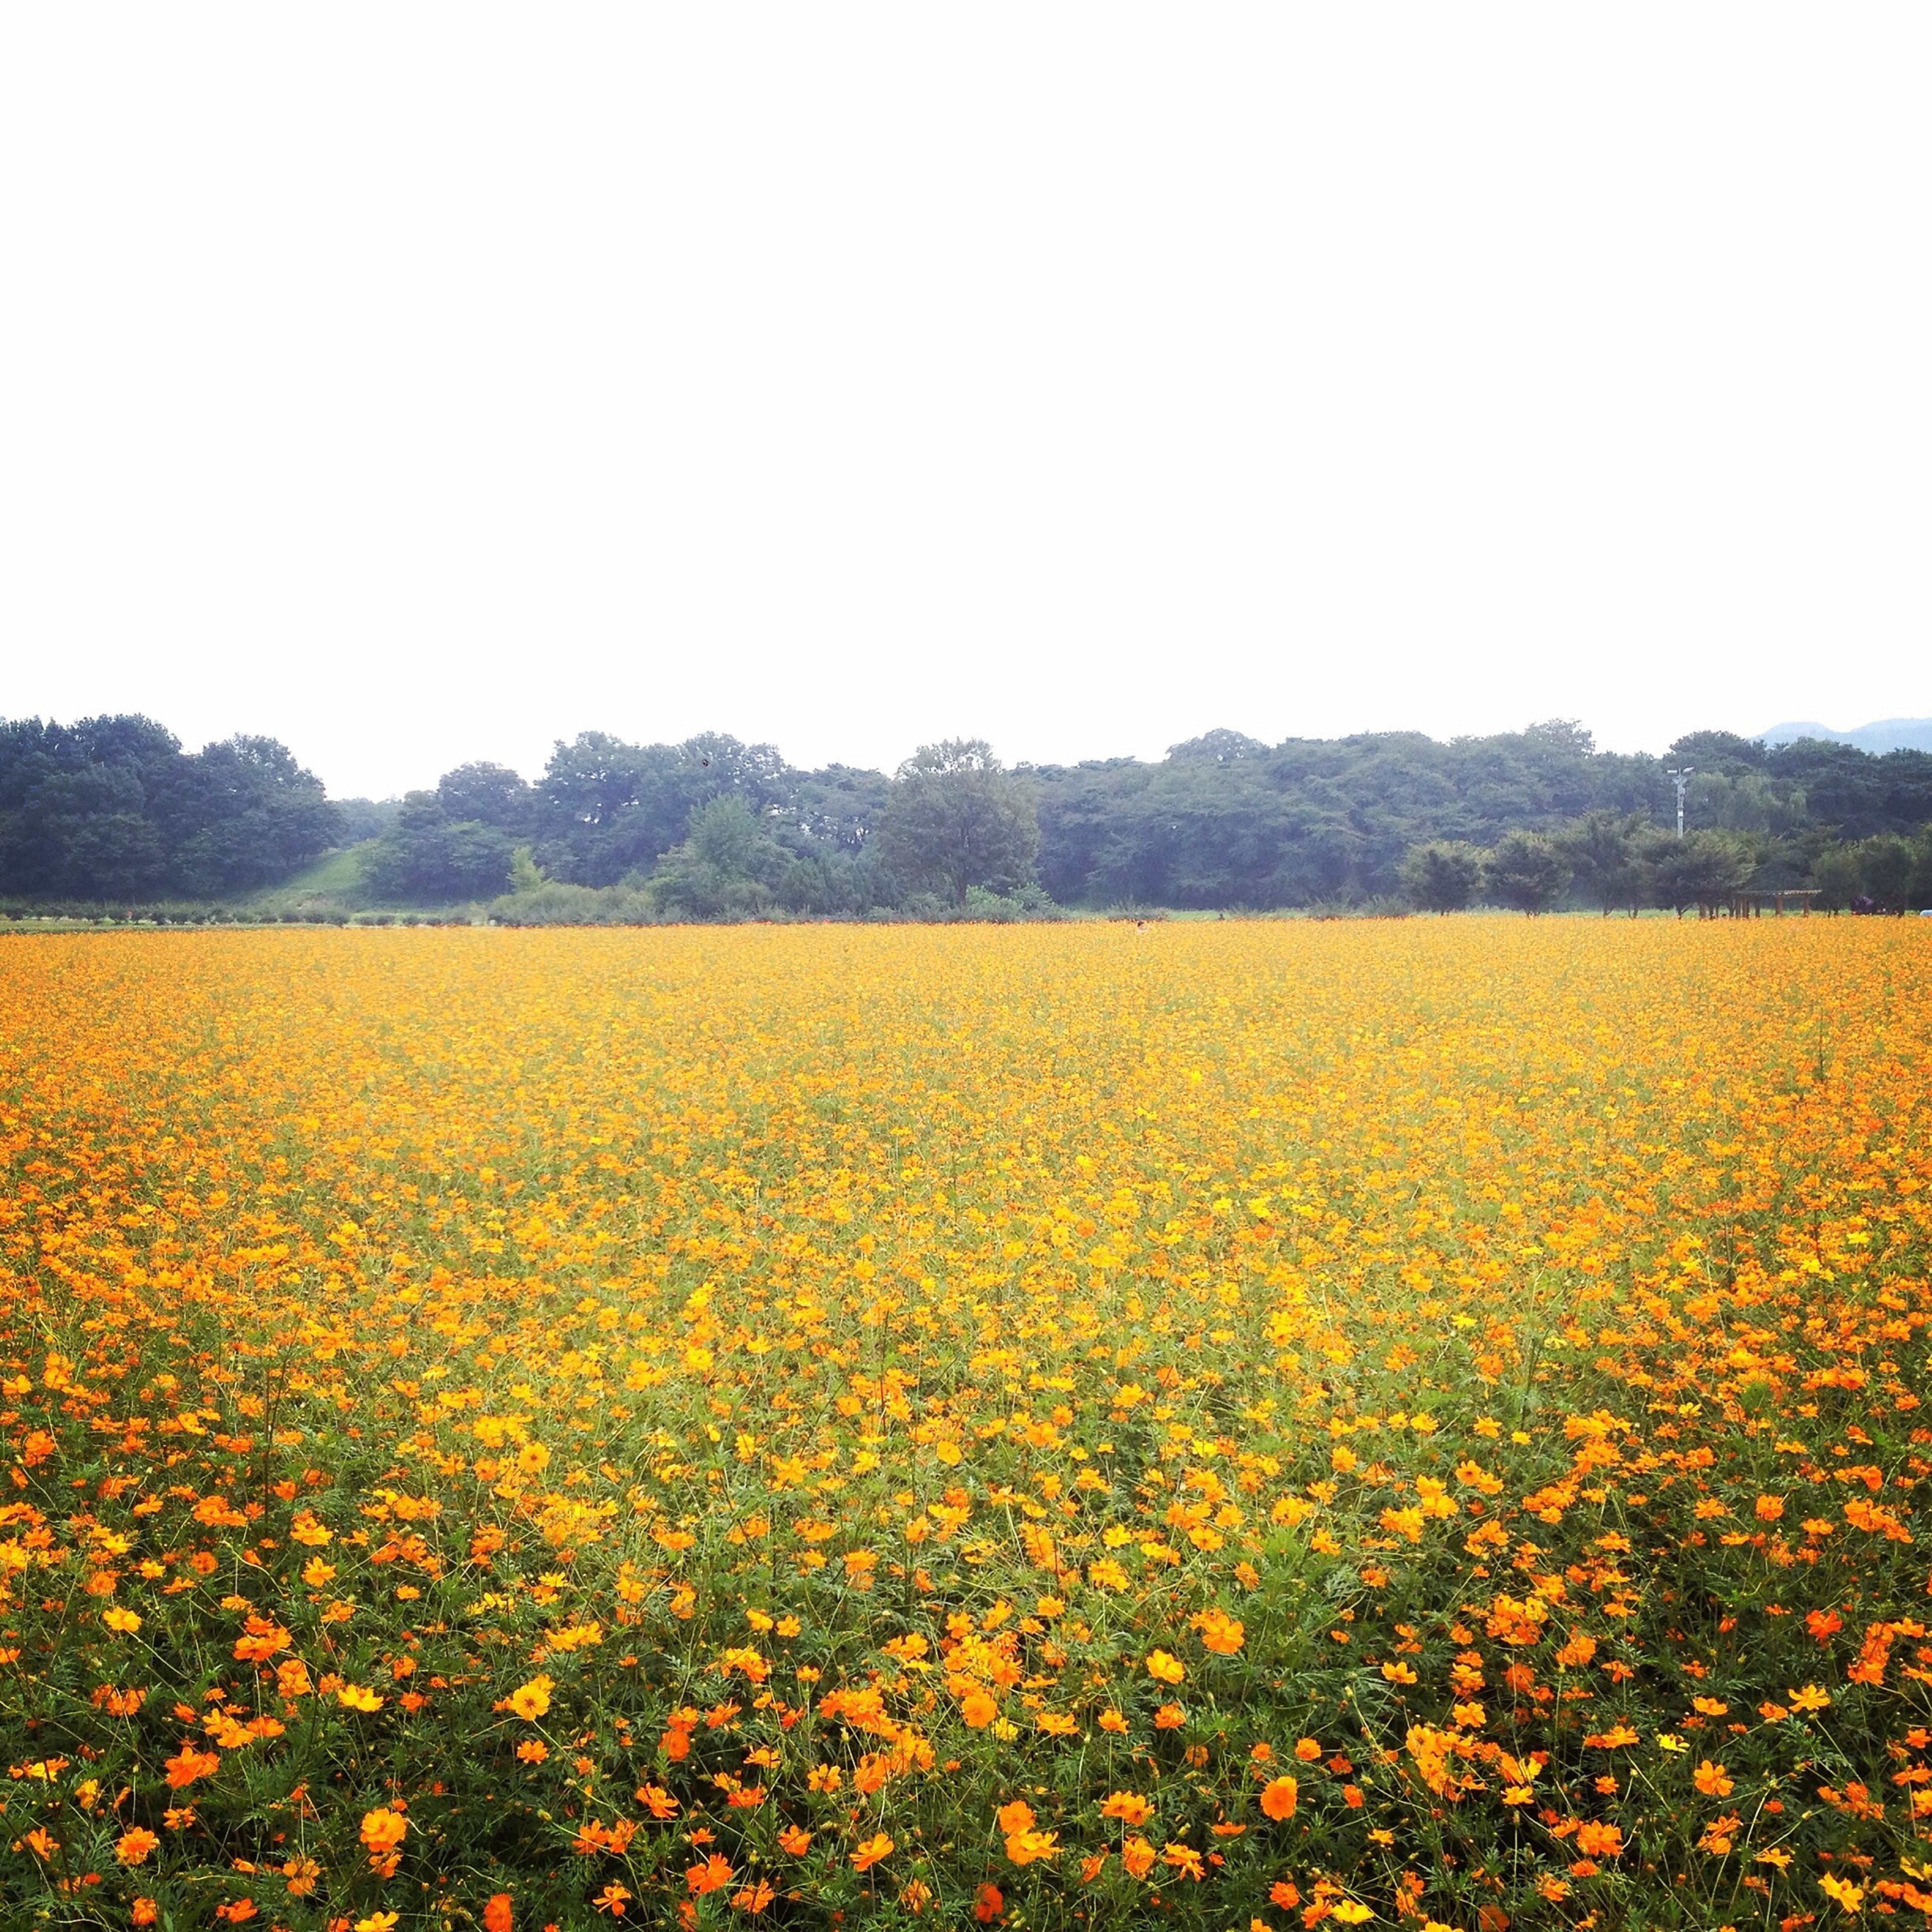 yellow, flower, beauty in nature, rural scene, field, agriculture, growth, freshness, landscape, tranquil scene, nature, abundance, oilseed rape, scenics, farm, tranquility, fragility, clear sky, sunflower, crop